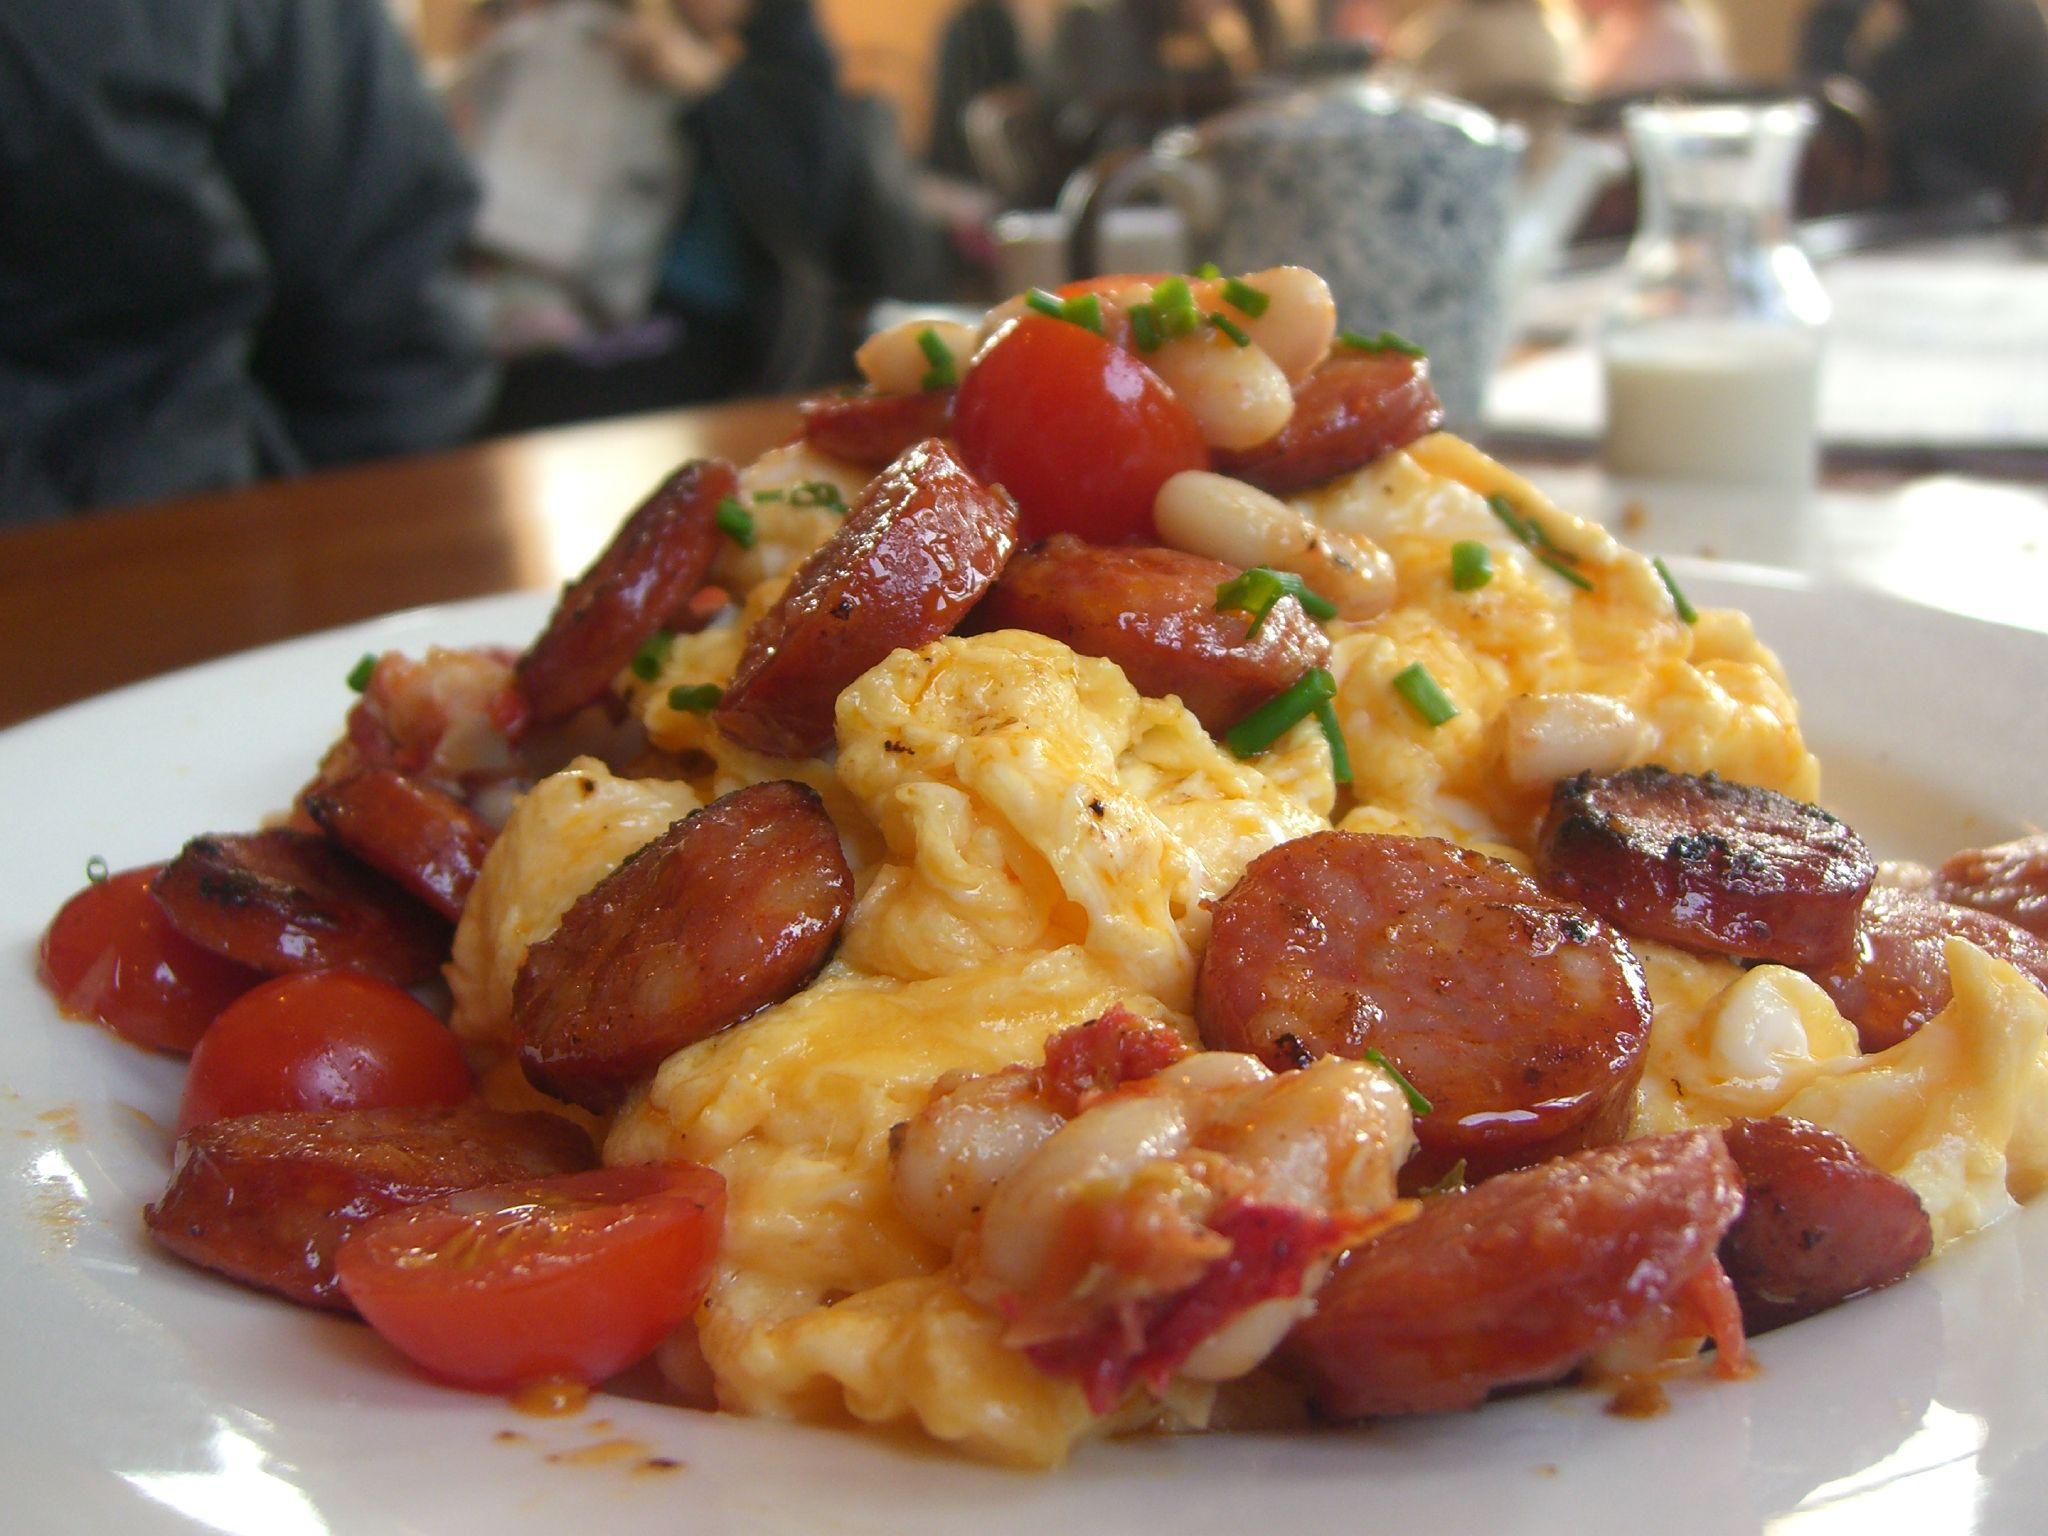 File:Scrambled eggs with chorizo, cannelini beans and cherry tomatoes.jpg - Wikimedia Commons